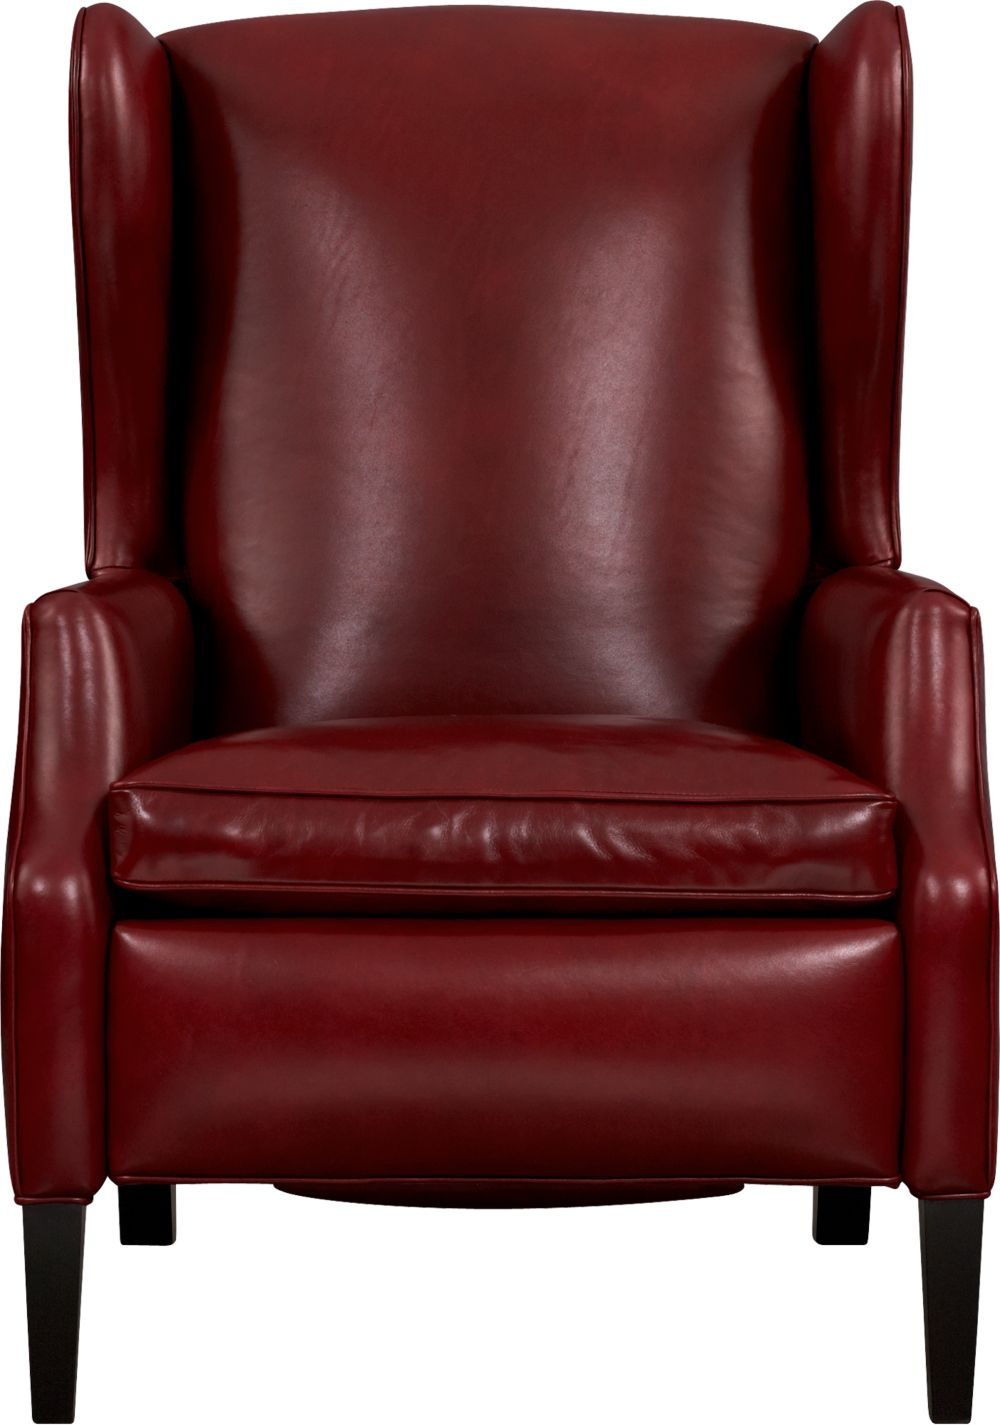 Wing Chair Recliners Furniture Paisley Recliner Chairs likewise La Z Boy Rocker Recliners ...